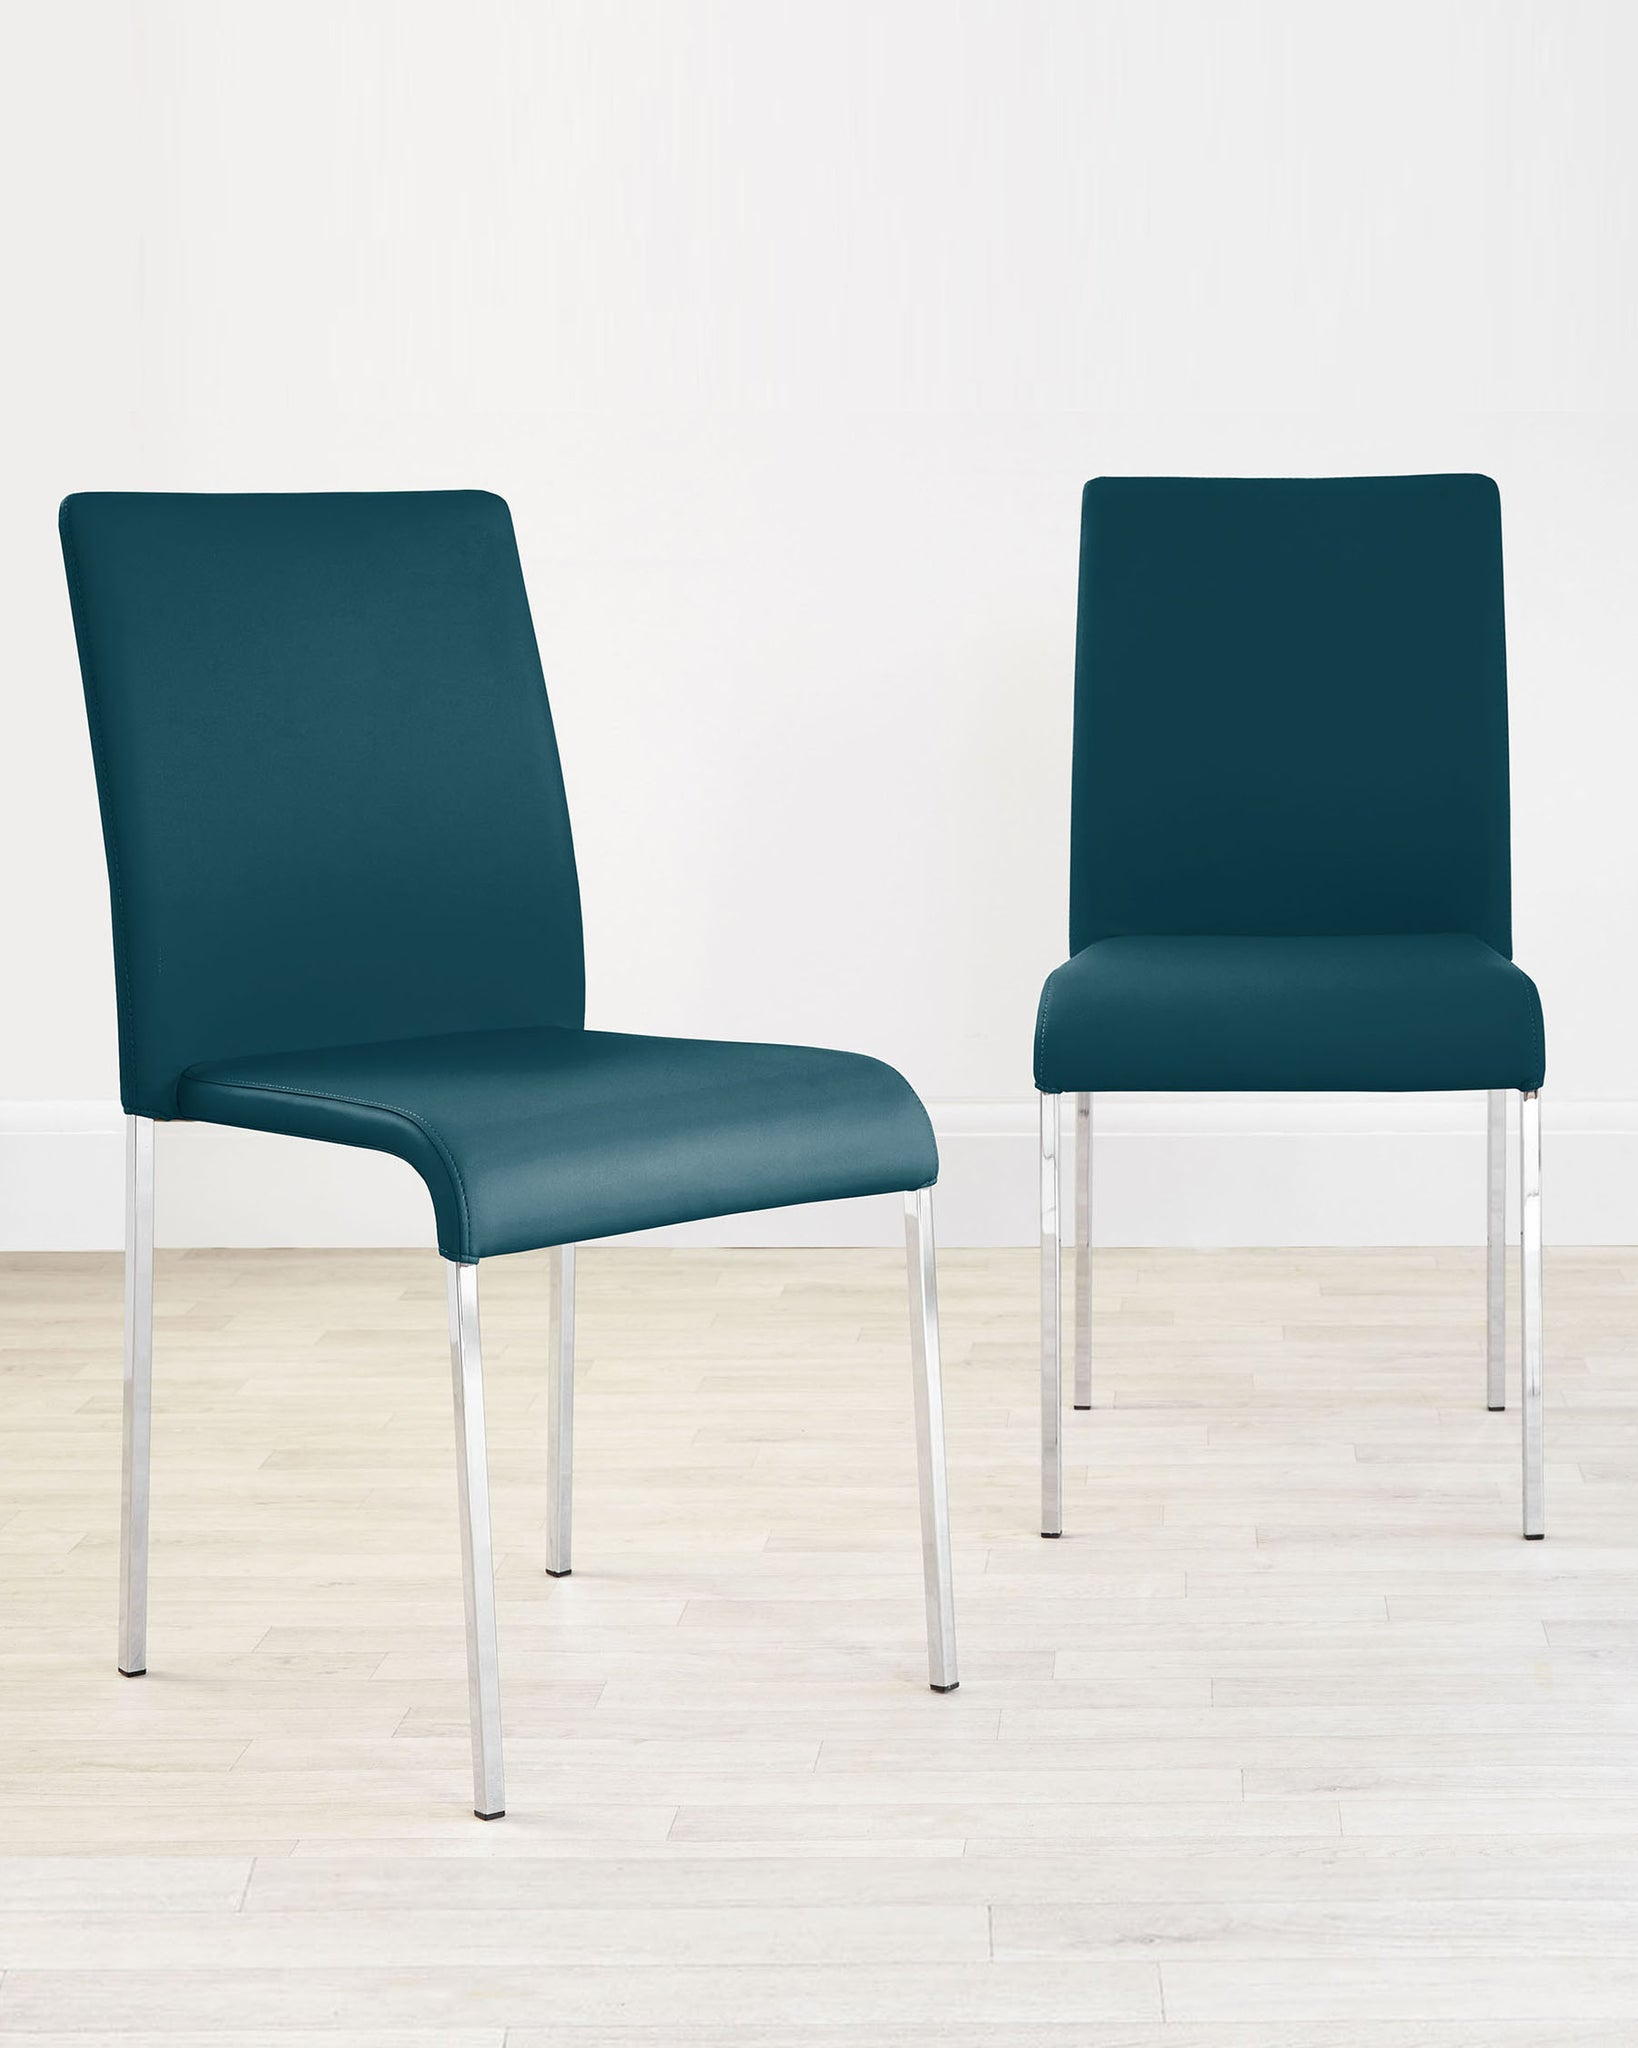 Tori Modern Teal Faux Leather Dining Chair - Set Of 2